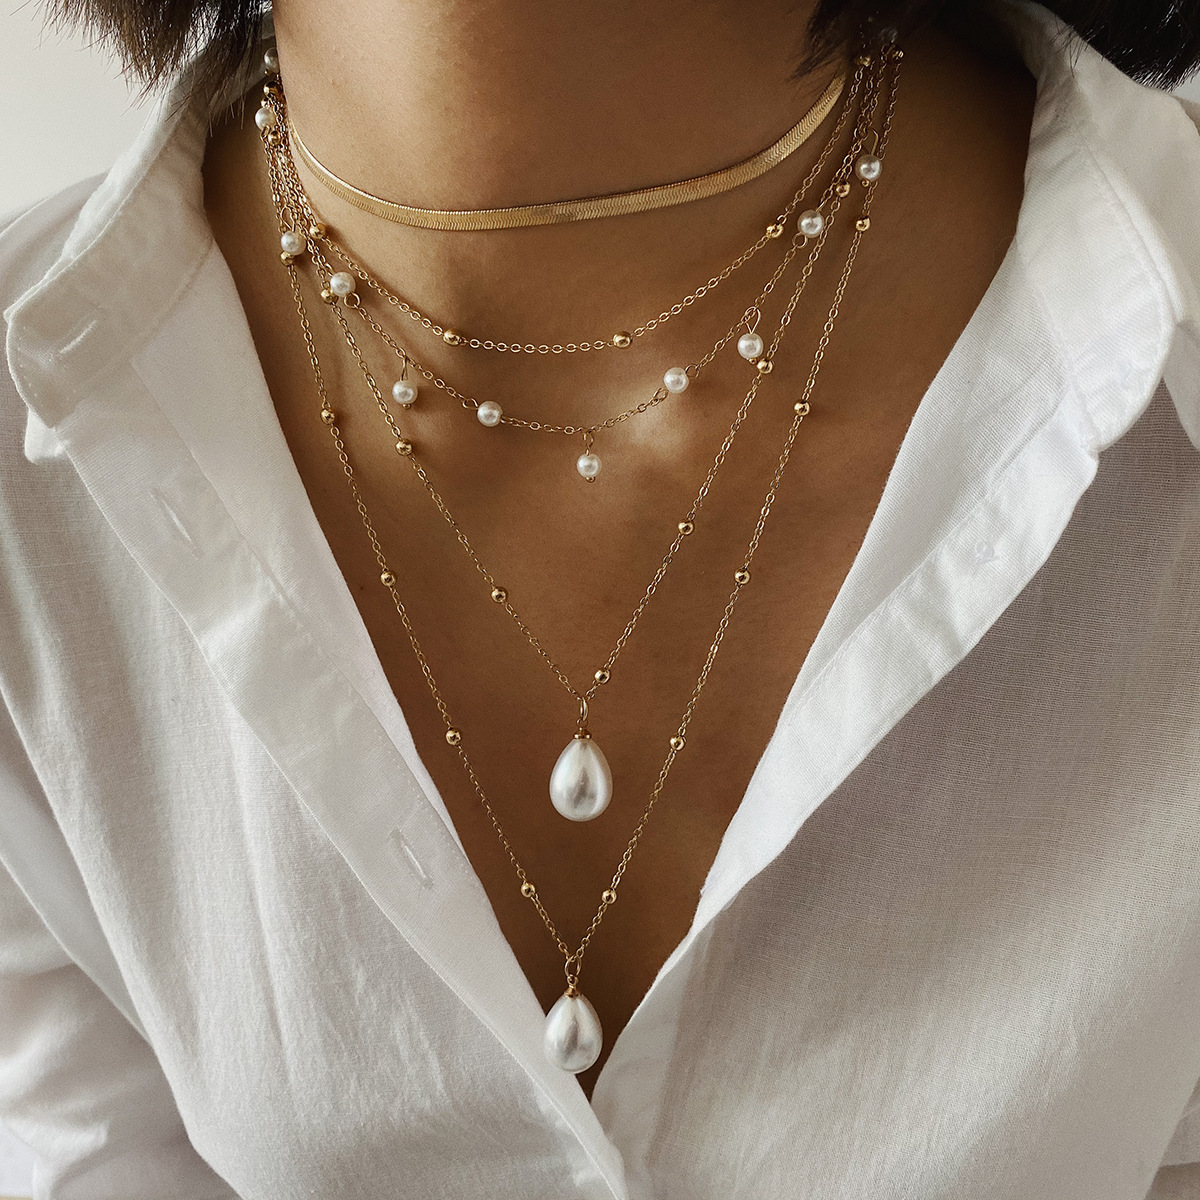 Boho Pearl Muliti Layered Bead Chain Pendent Necklace For Women Gold Metal Collar Choker Necklace Fashion Retro Long Chain Gifts